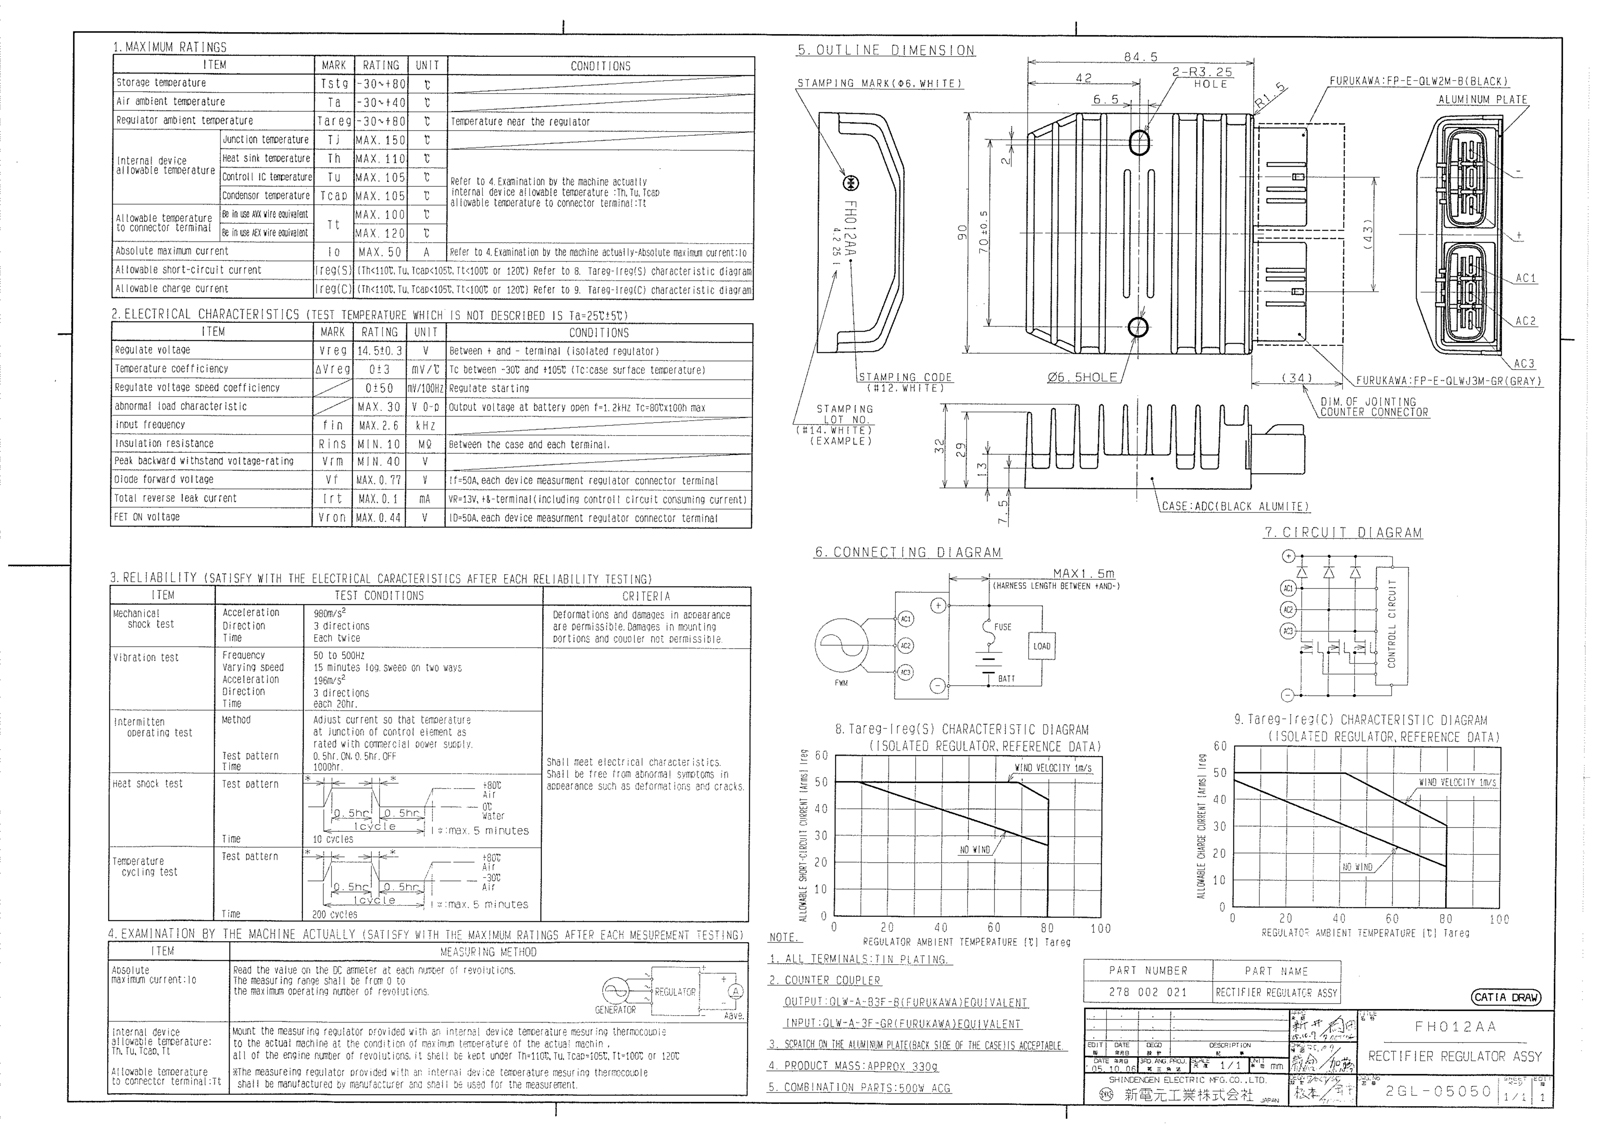 MOSFET R/R FH020AA tech data sheets anyone? - Ducati ms